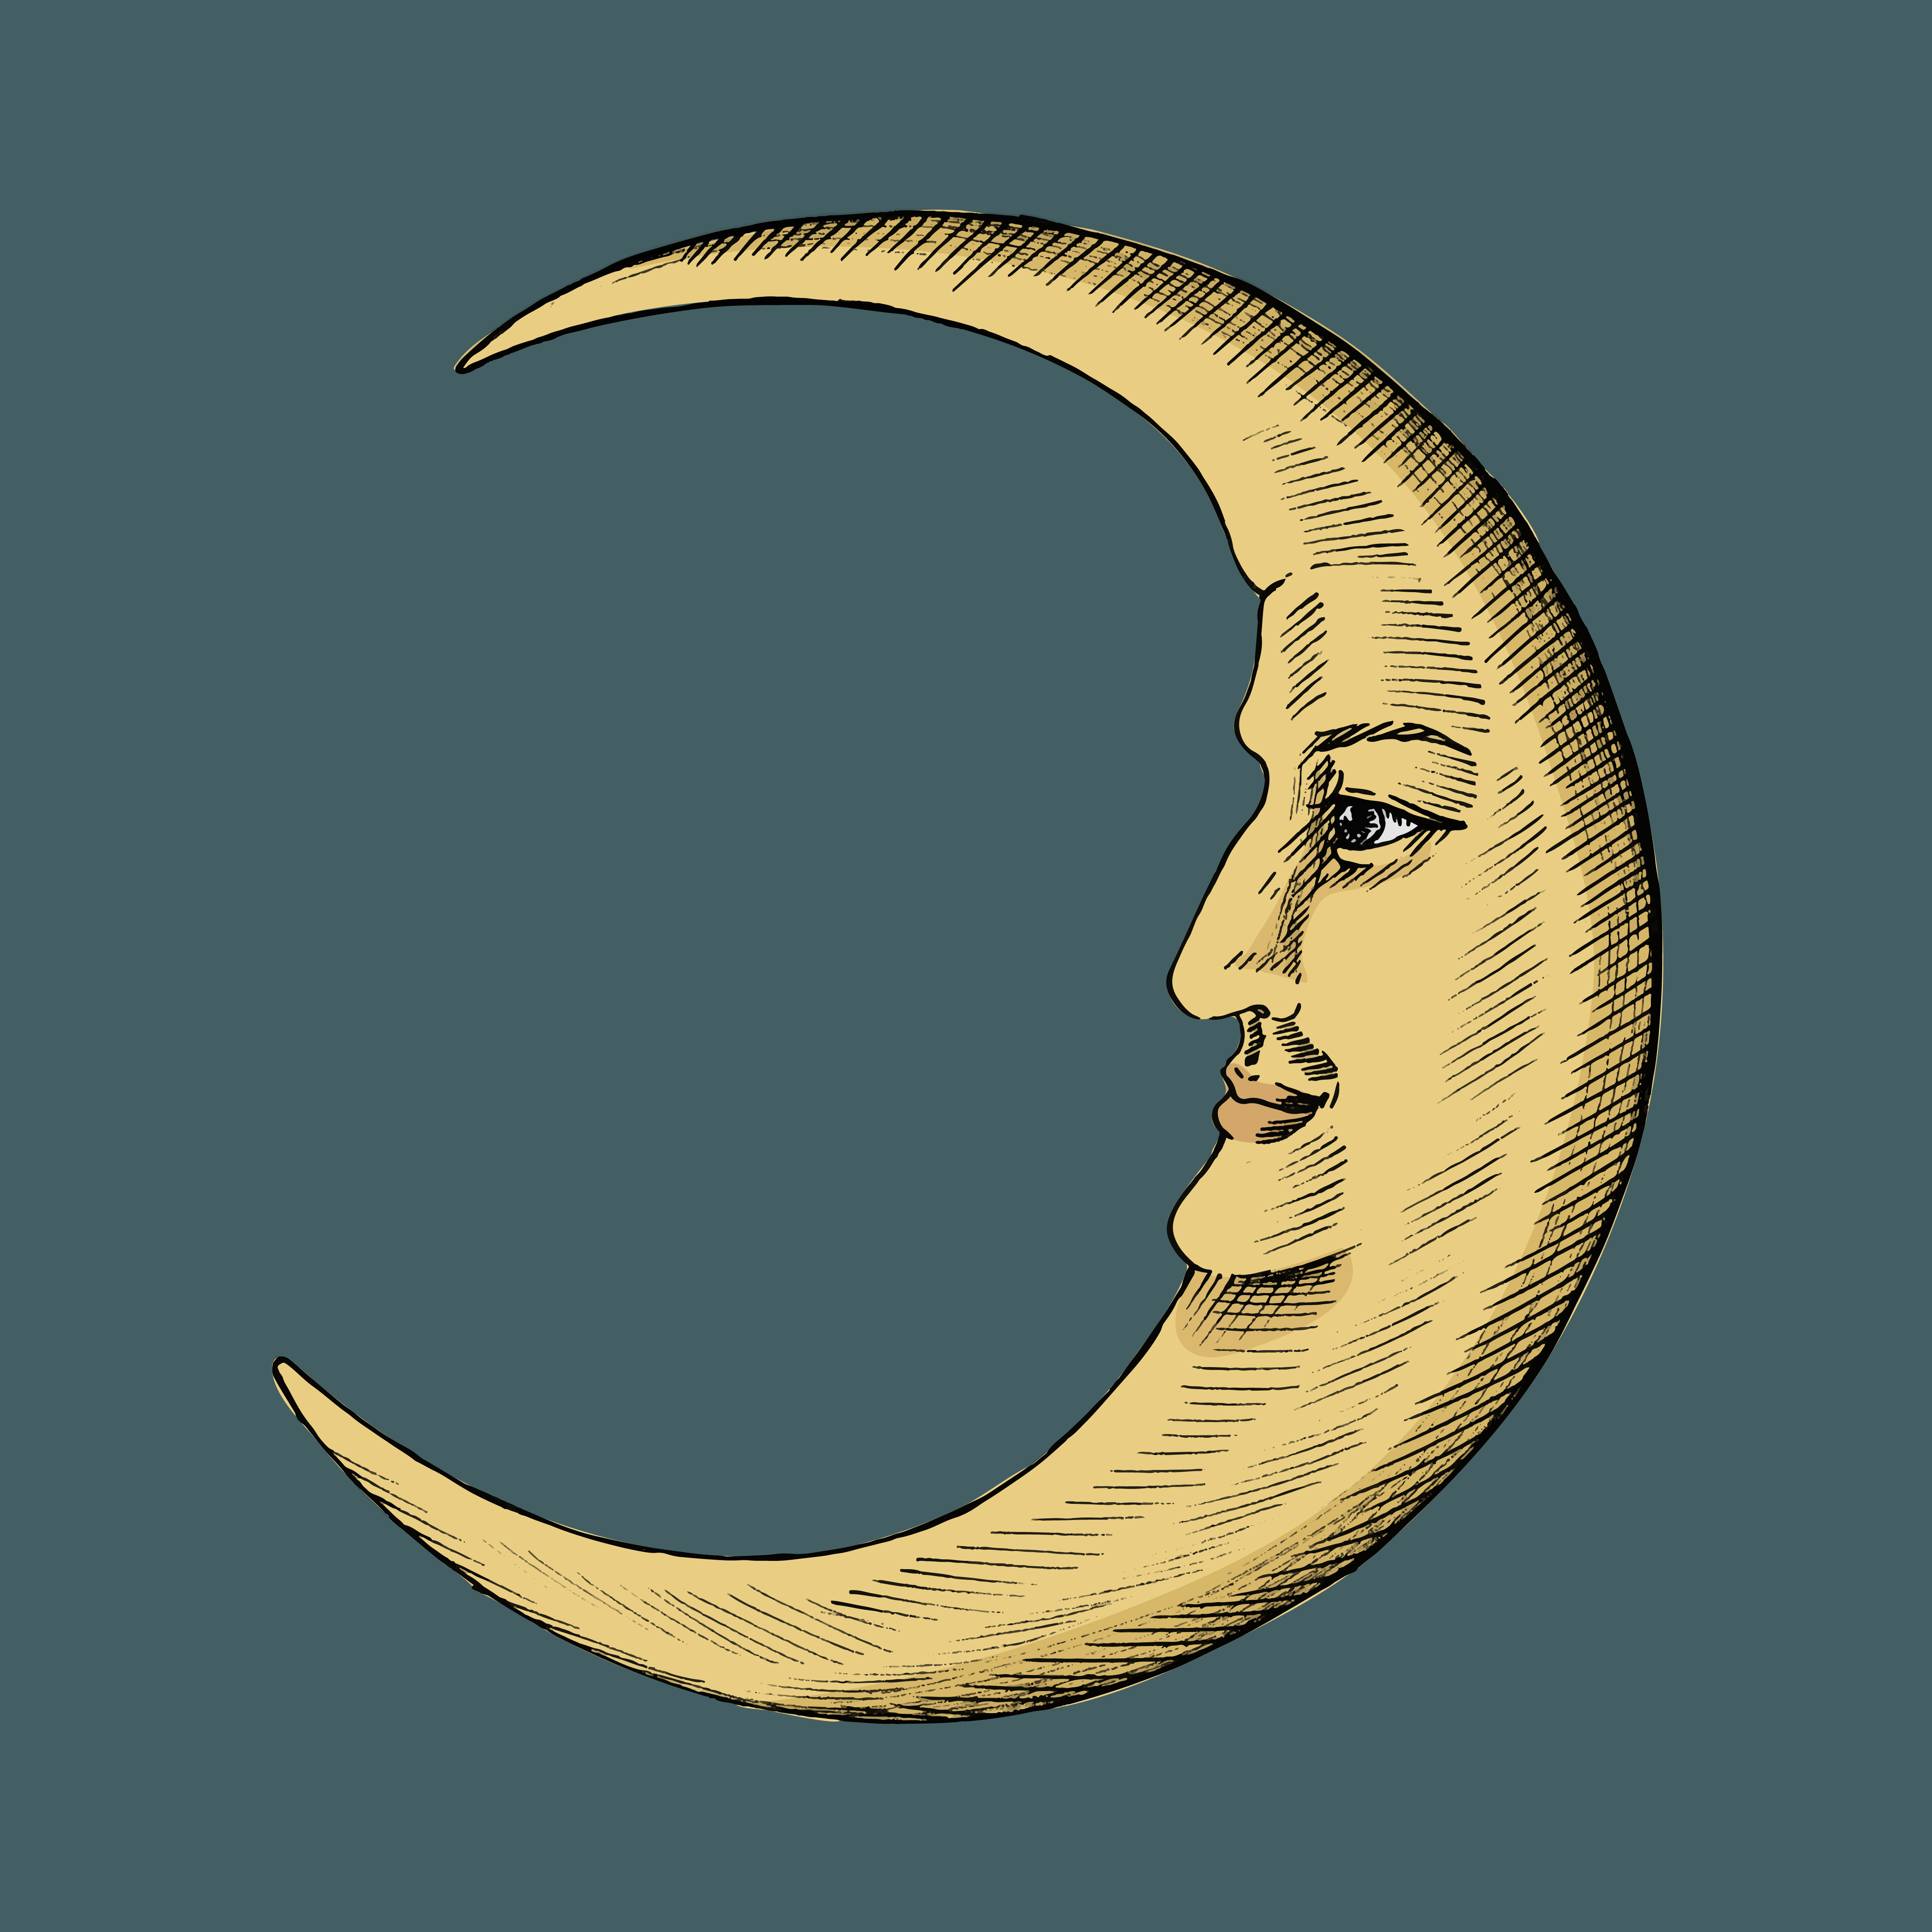 Half Crescent Moon With Face Tattoo: Hand Drawn Sketch Of A Crescent Moon